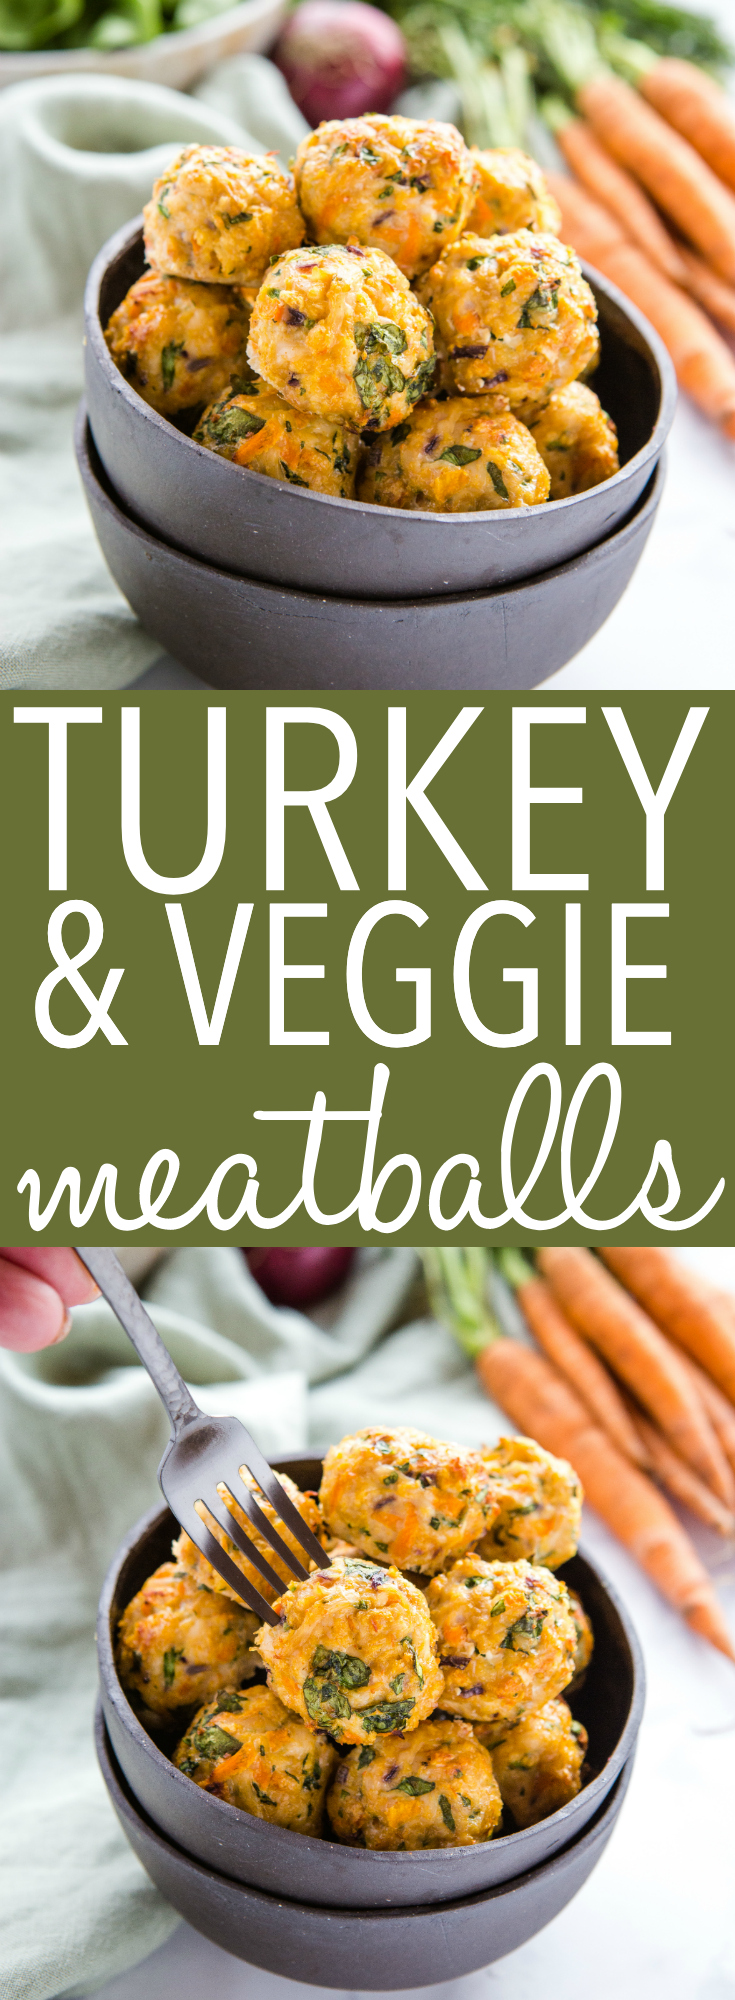 These Easy Turkey Veggie Meatballs are a great healthy alternative for traditional meatballs - made with lean ground turkey and packed with veggies, they're low in fat and calories but high in protein and flavour! Recipe from thebusybaker.ca! #turkey #meatballs #healthy #lowfat #lowcalories #weightloss #diet #mealprep #mealplanning via @busybakerblog